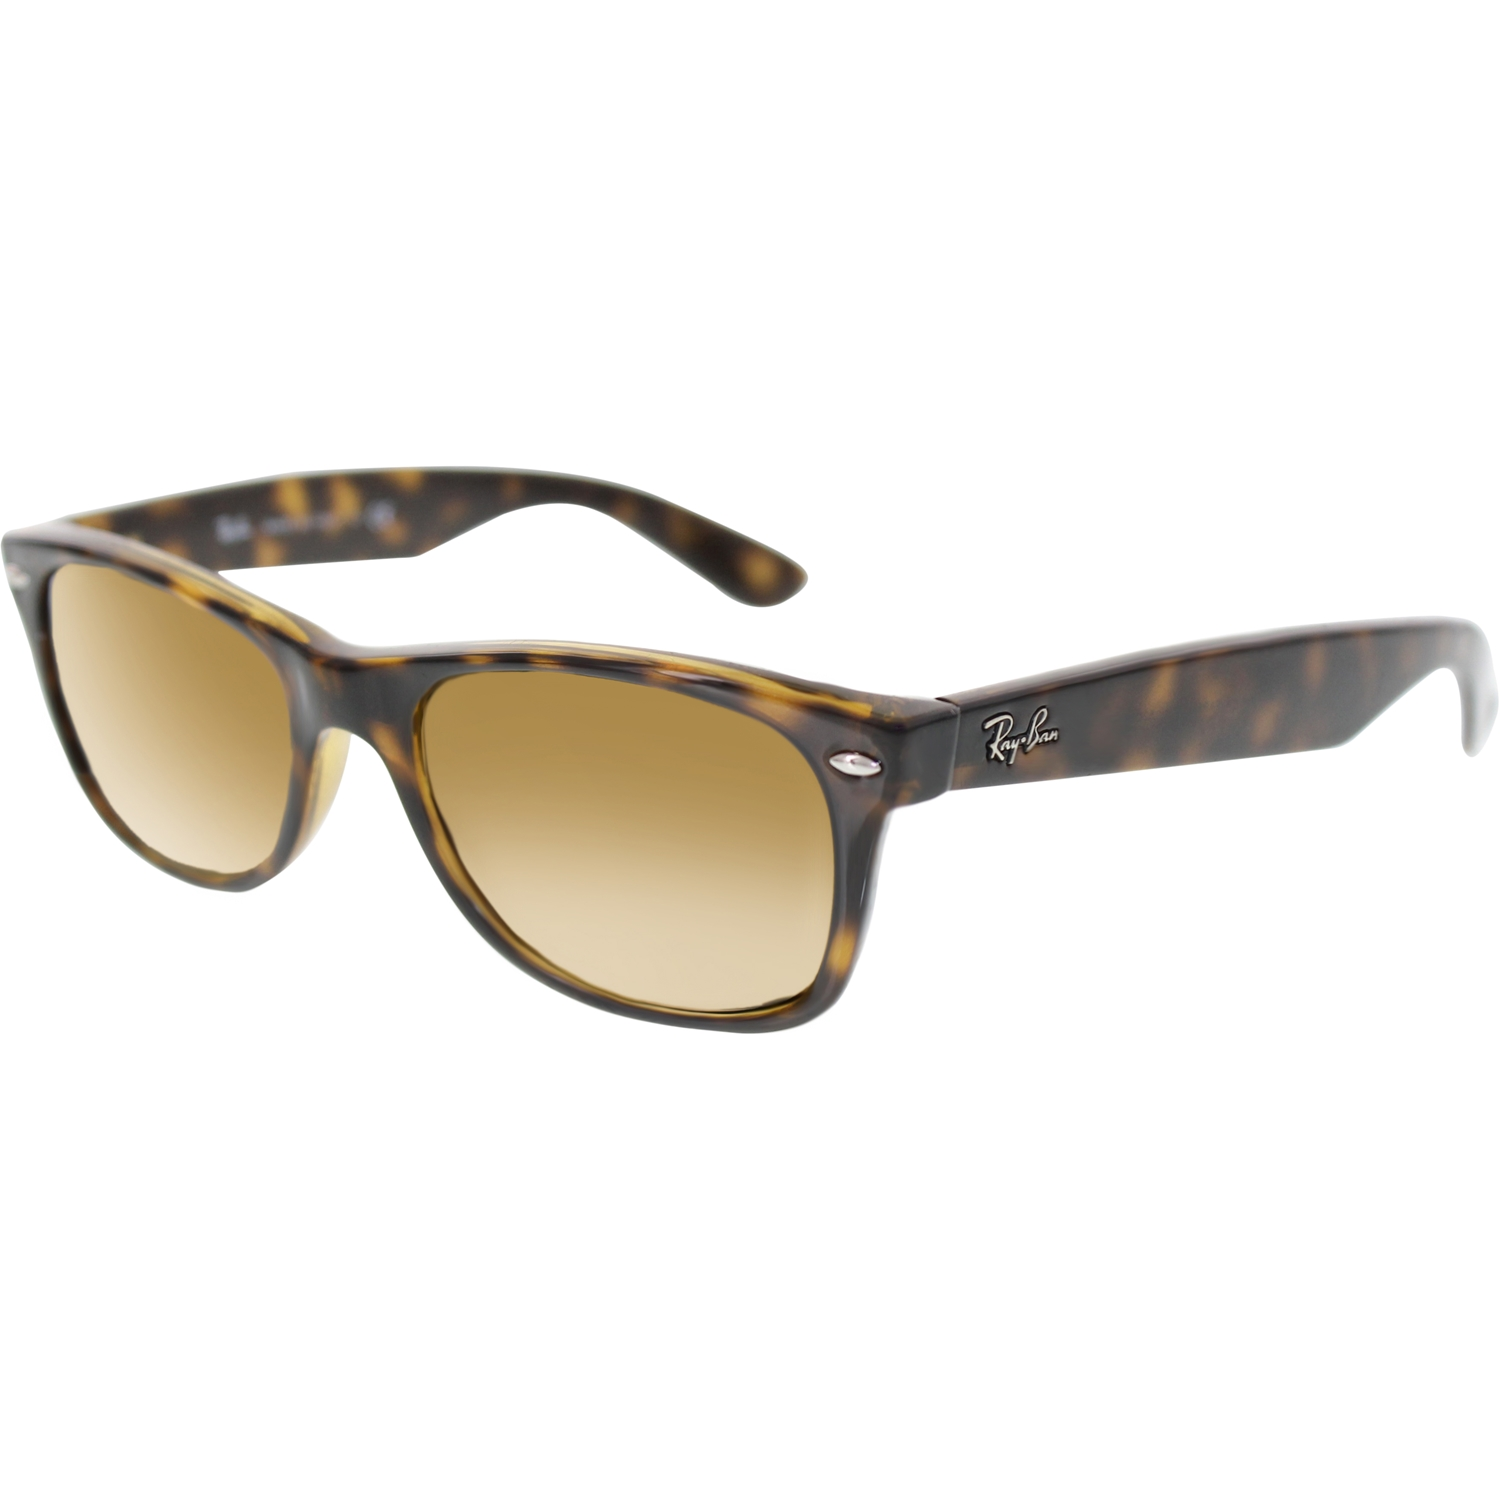 new wayfarer sunglasses 1qul  Ray-Ban Women's New Wayfarer RB2132-710-52 Tortoiseshell Wayfarer  Sunglasses